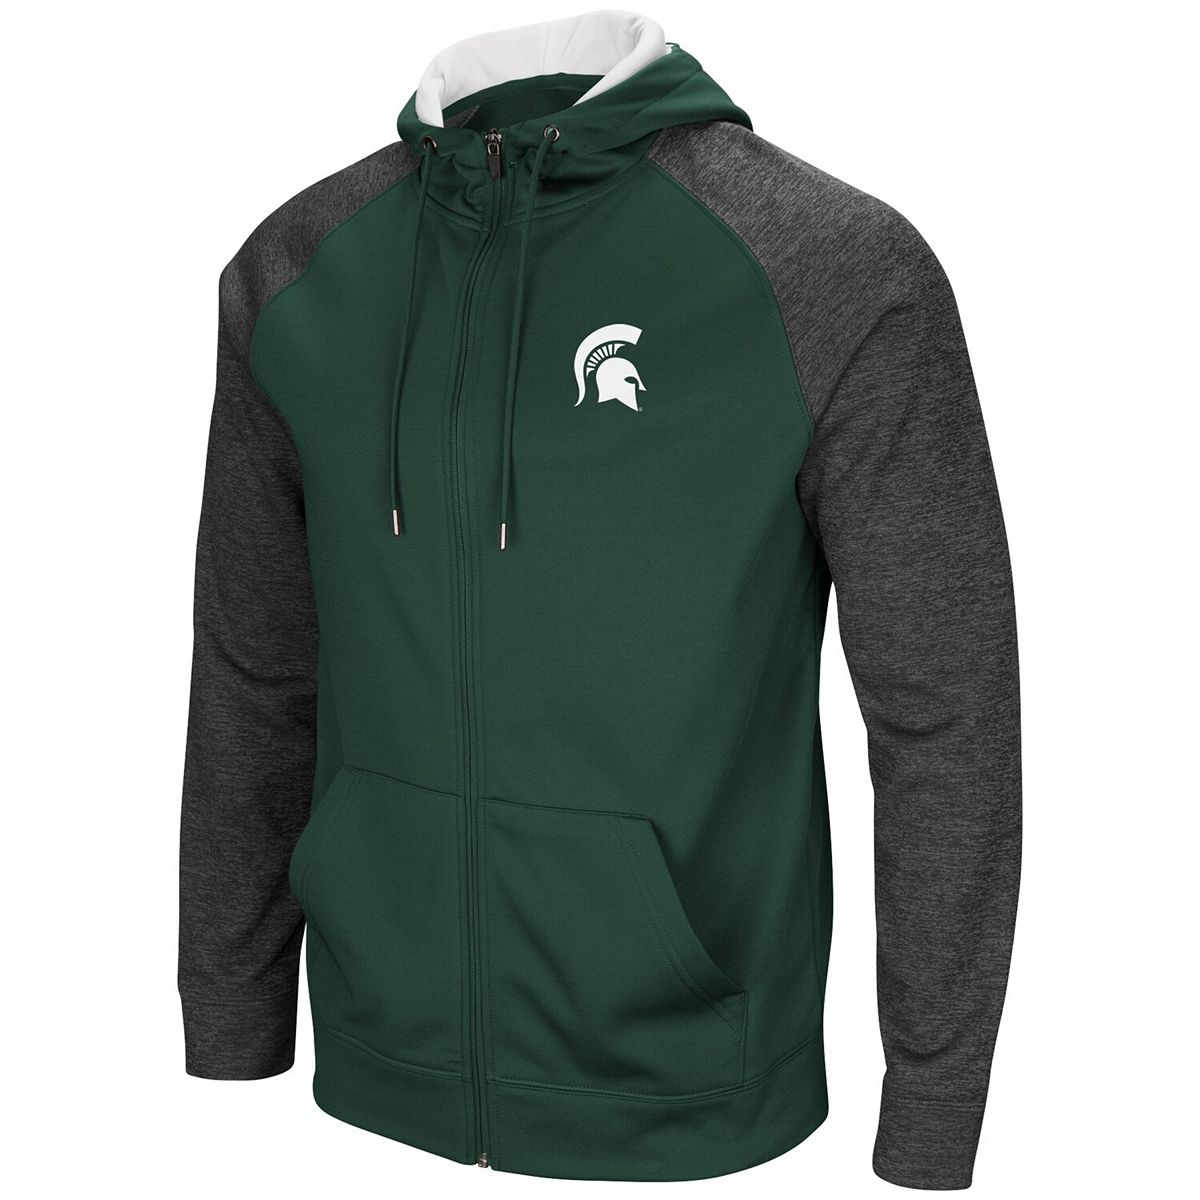 Men's Colosseum Green Michigan State Spartans Big & Tall Magic Rays Full-Zip Hoodie FklNc